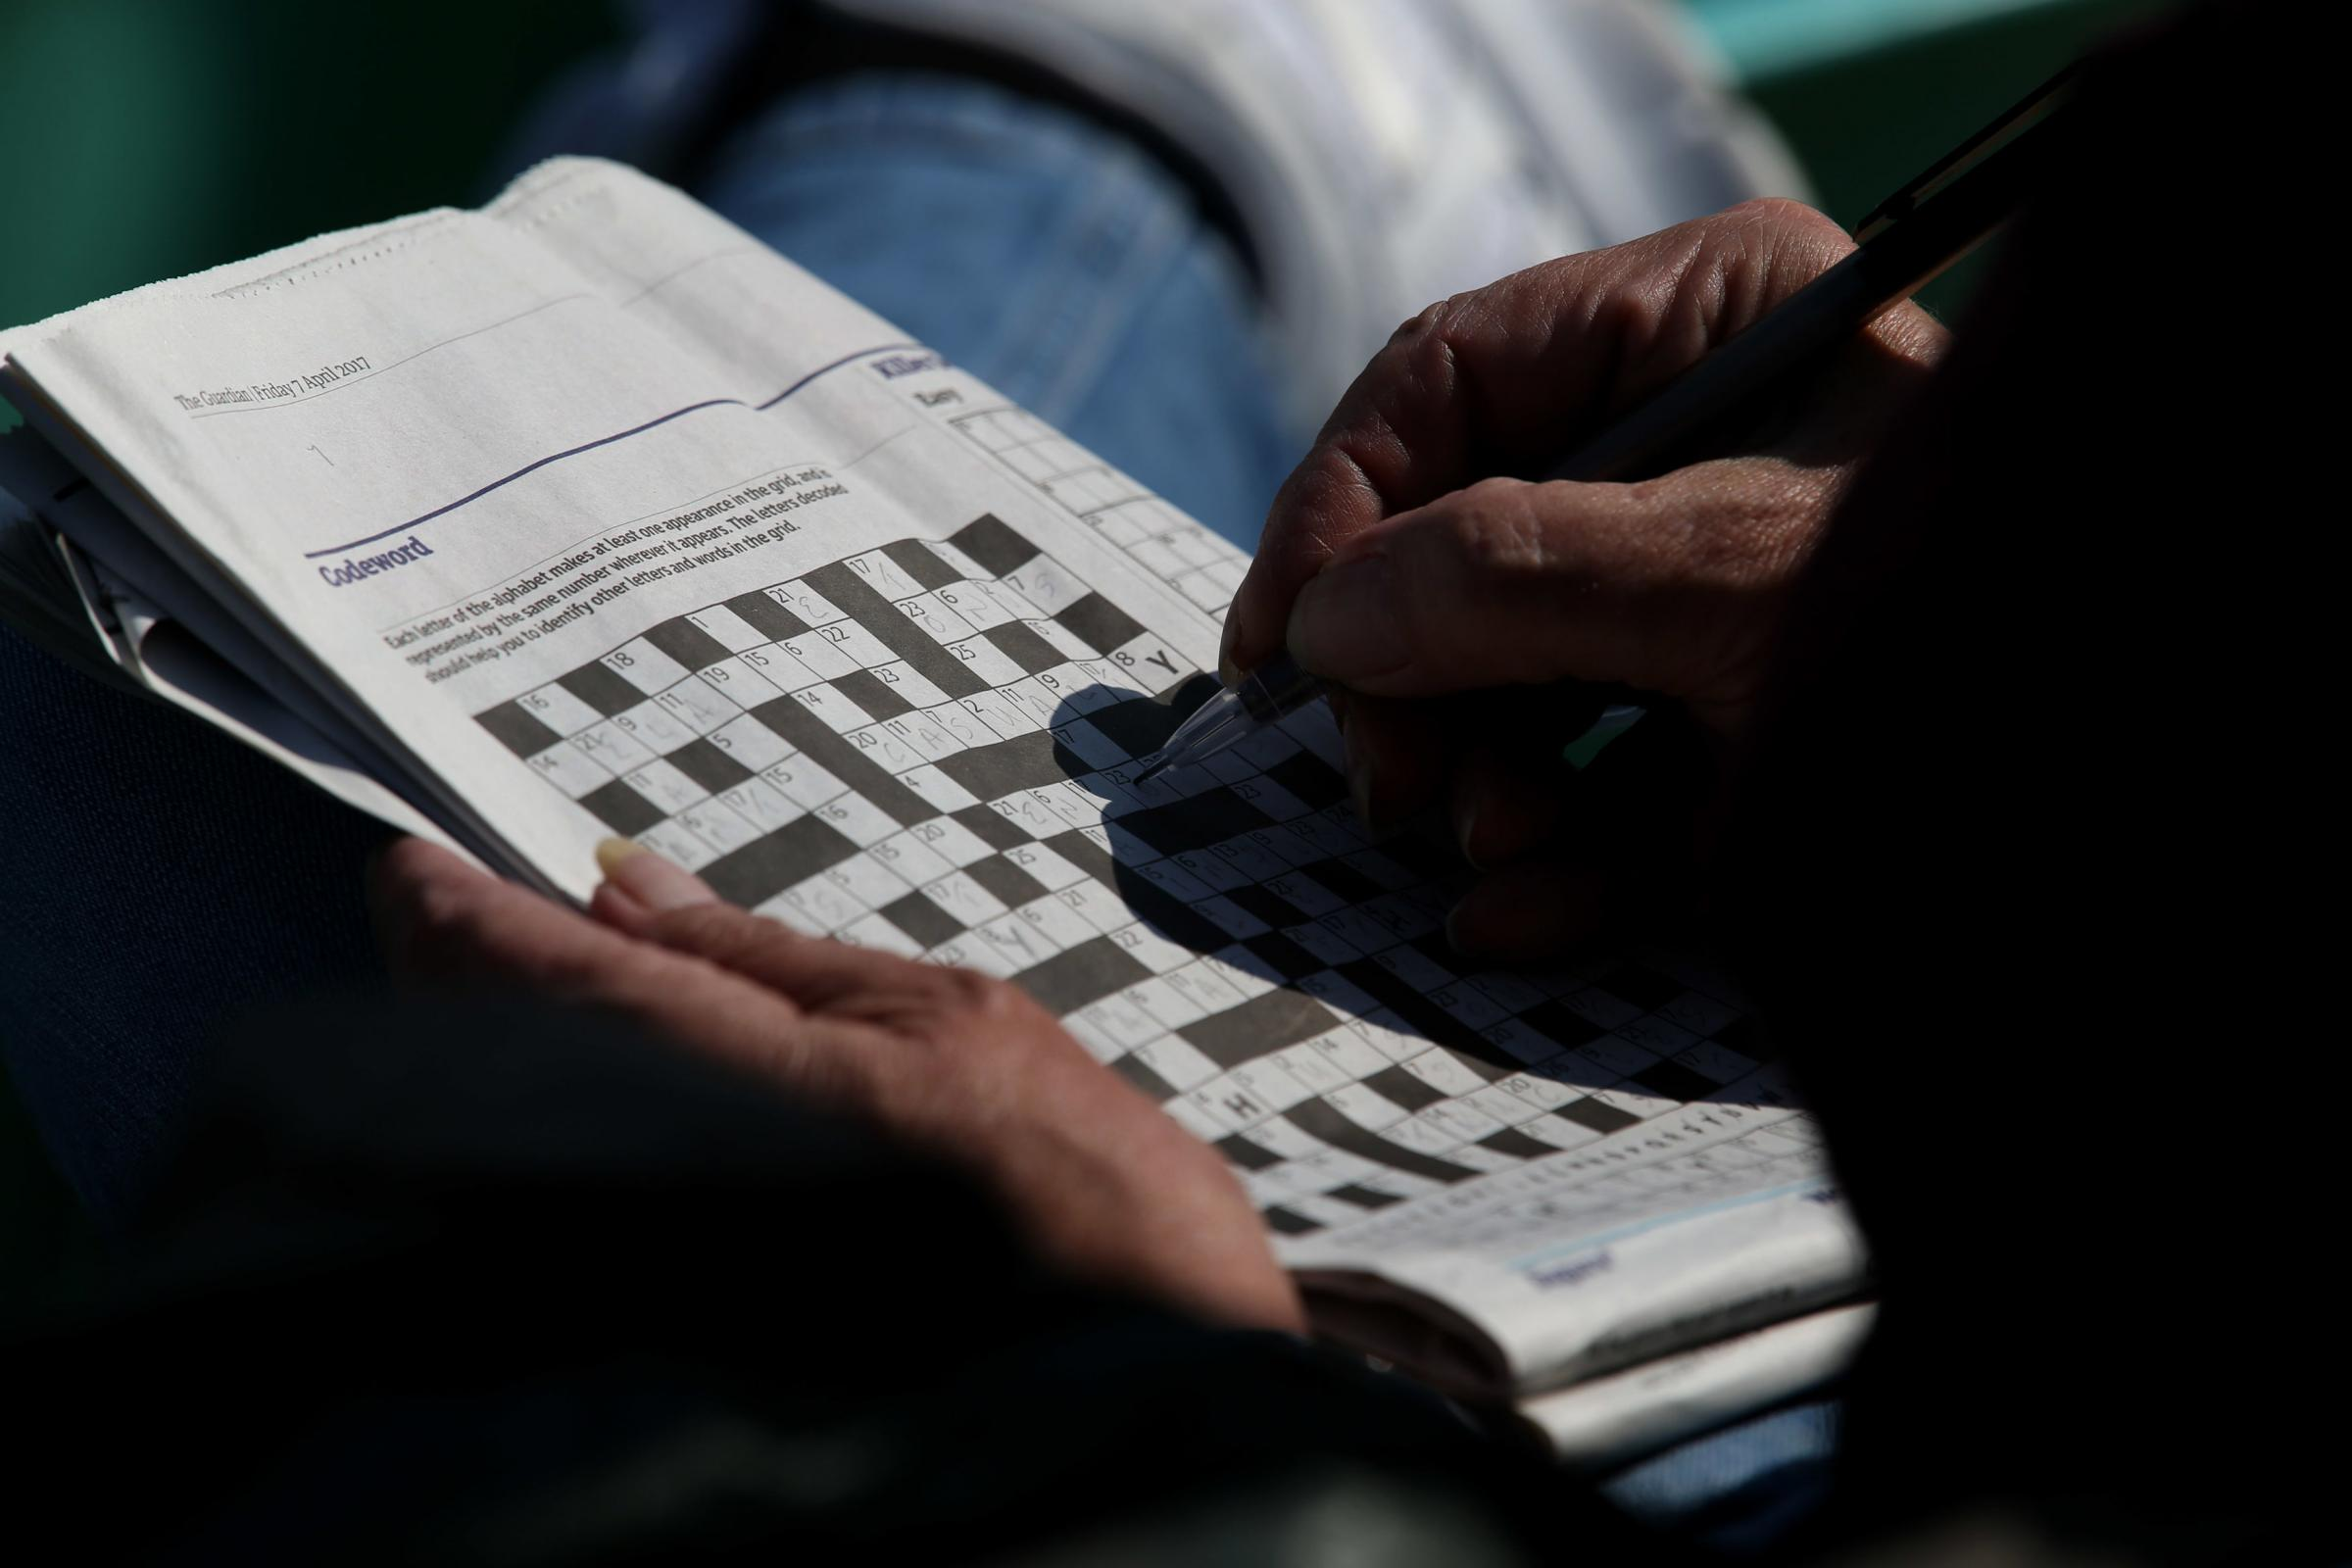 File photo dated 07/04/17 of a person doing a crossword puzzle. According to a study, older adults who regularly do word and number puzzles have sharper brains. PRESS ASSOCIATION Photo. Issue date: Thursday May 16, 2019. The study found the more regularly